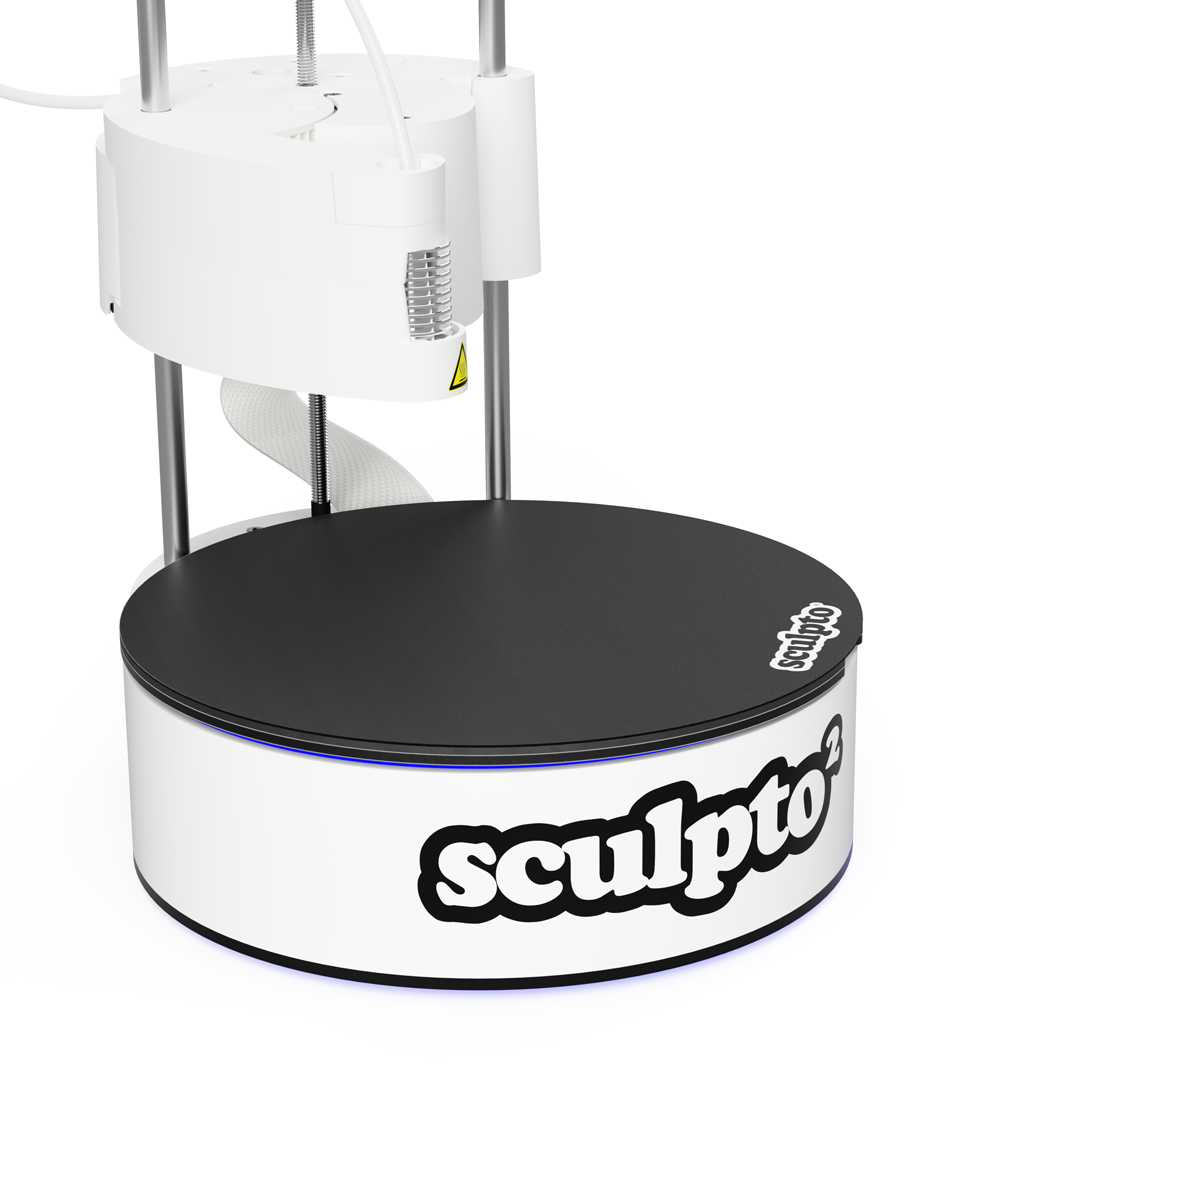 Sculpto-PRO2---Product-picture4